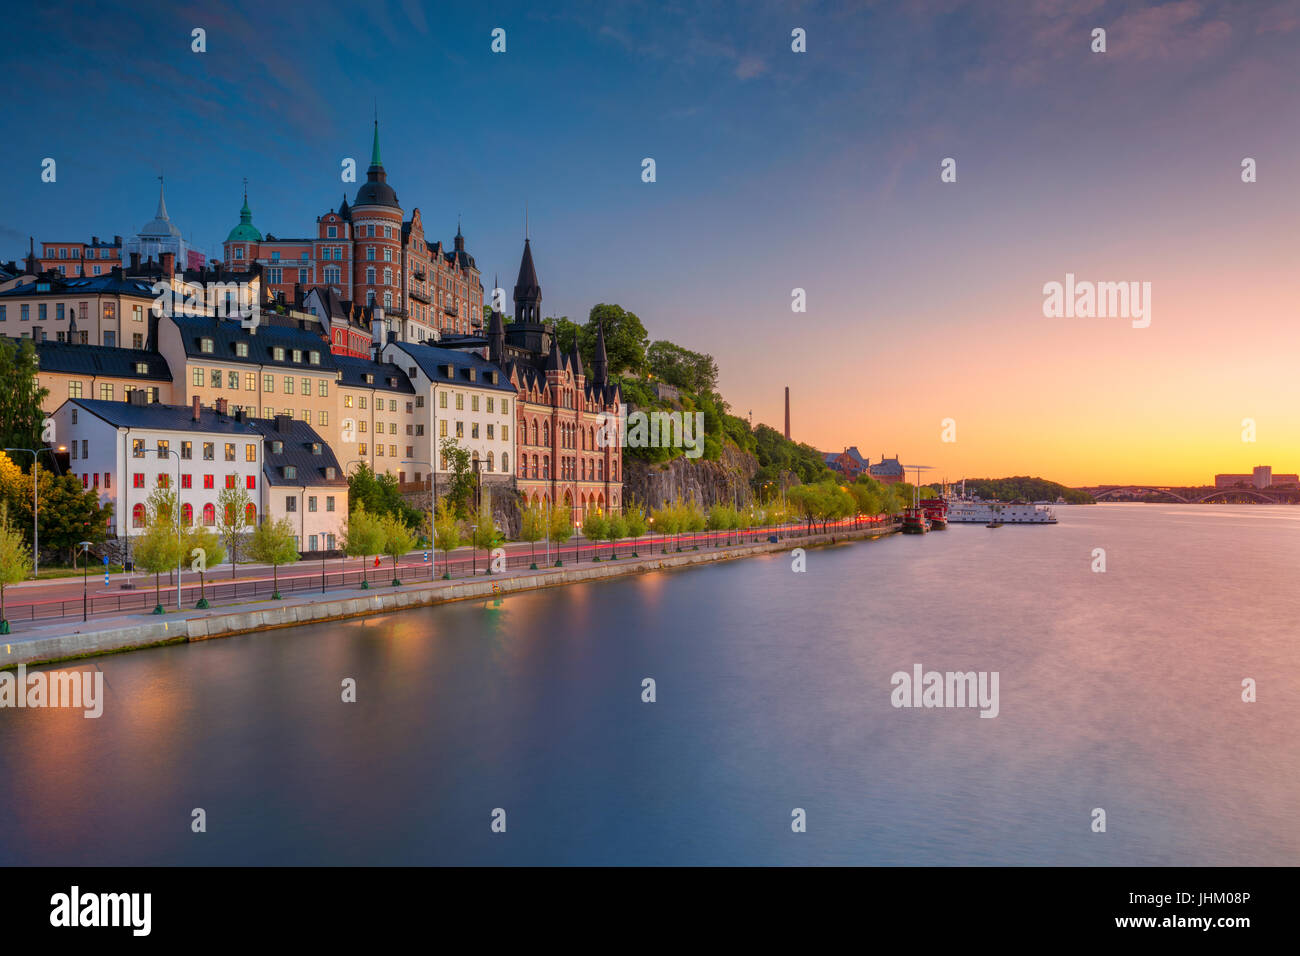 Stockholm. Image of old town Stockholm, Sweden during sunset. - Stock Image